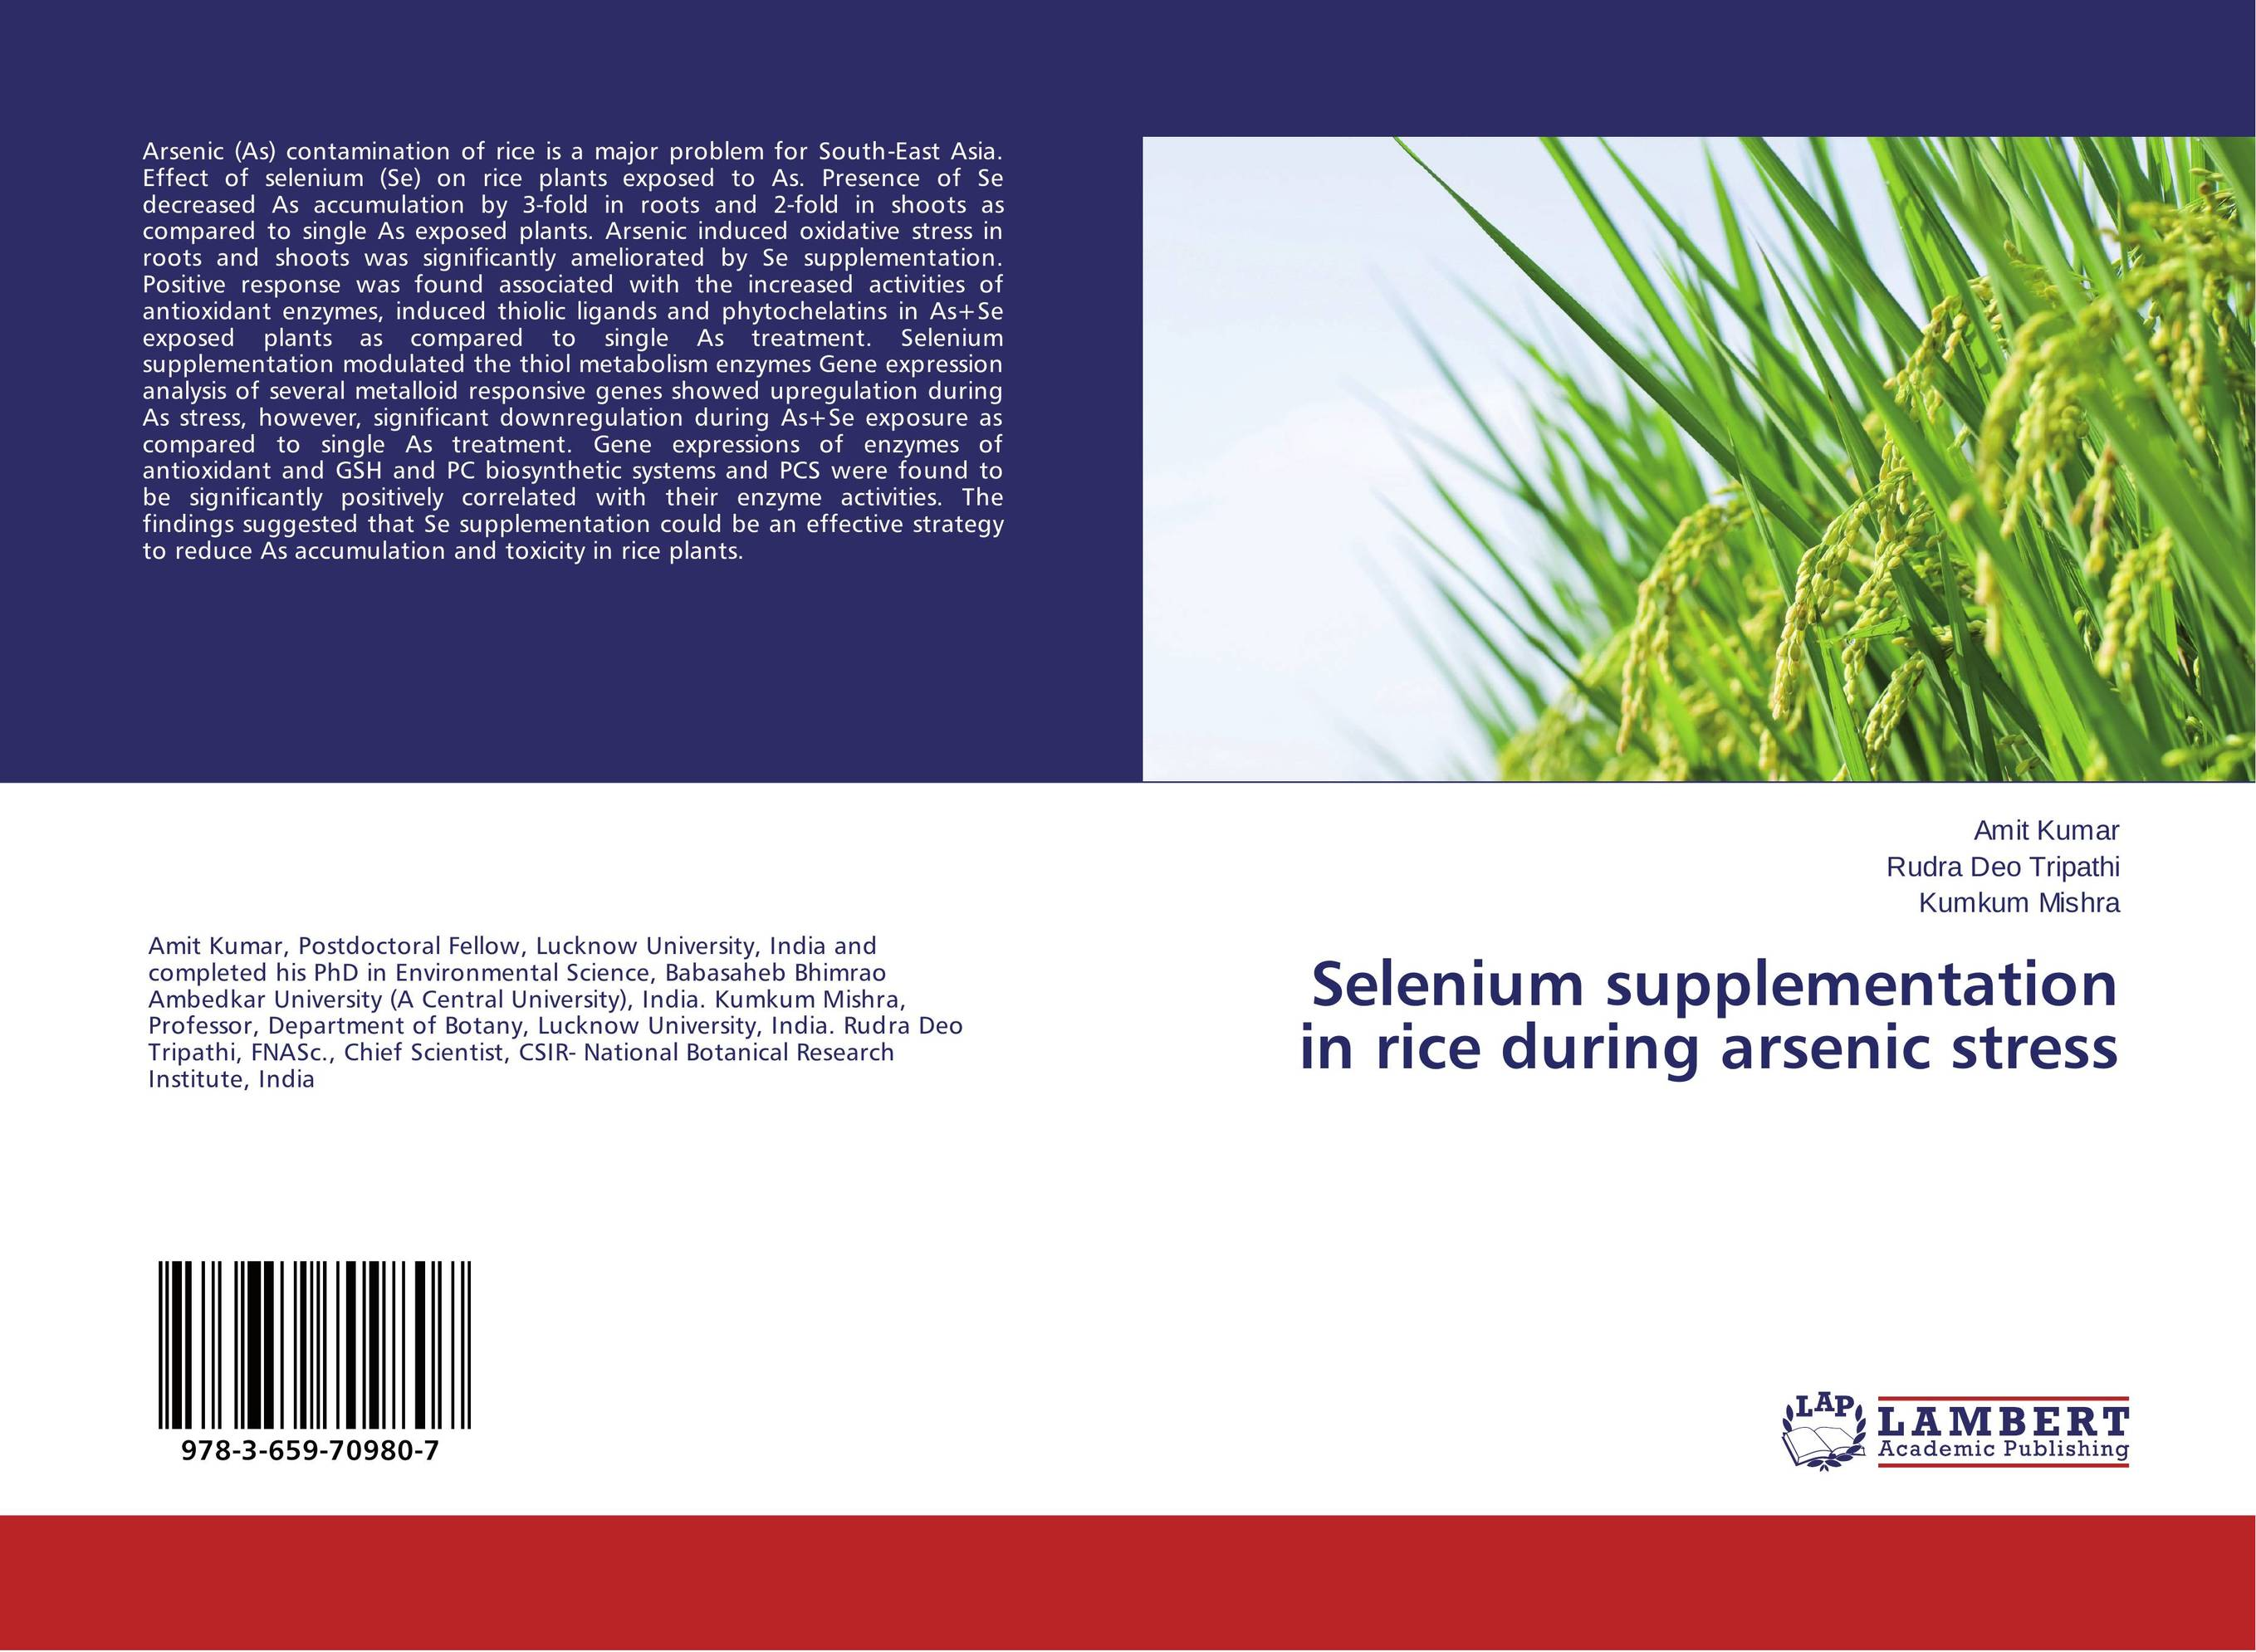 Selenium supplementation in rice during arsenic stress the effect of stress factors on gene expression in higher plants